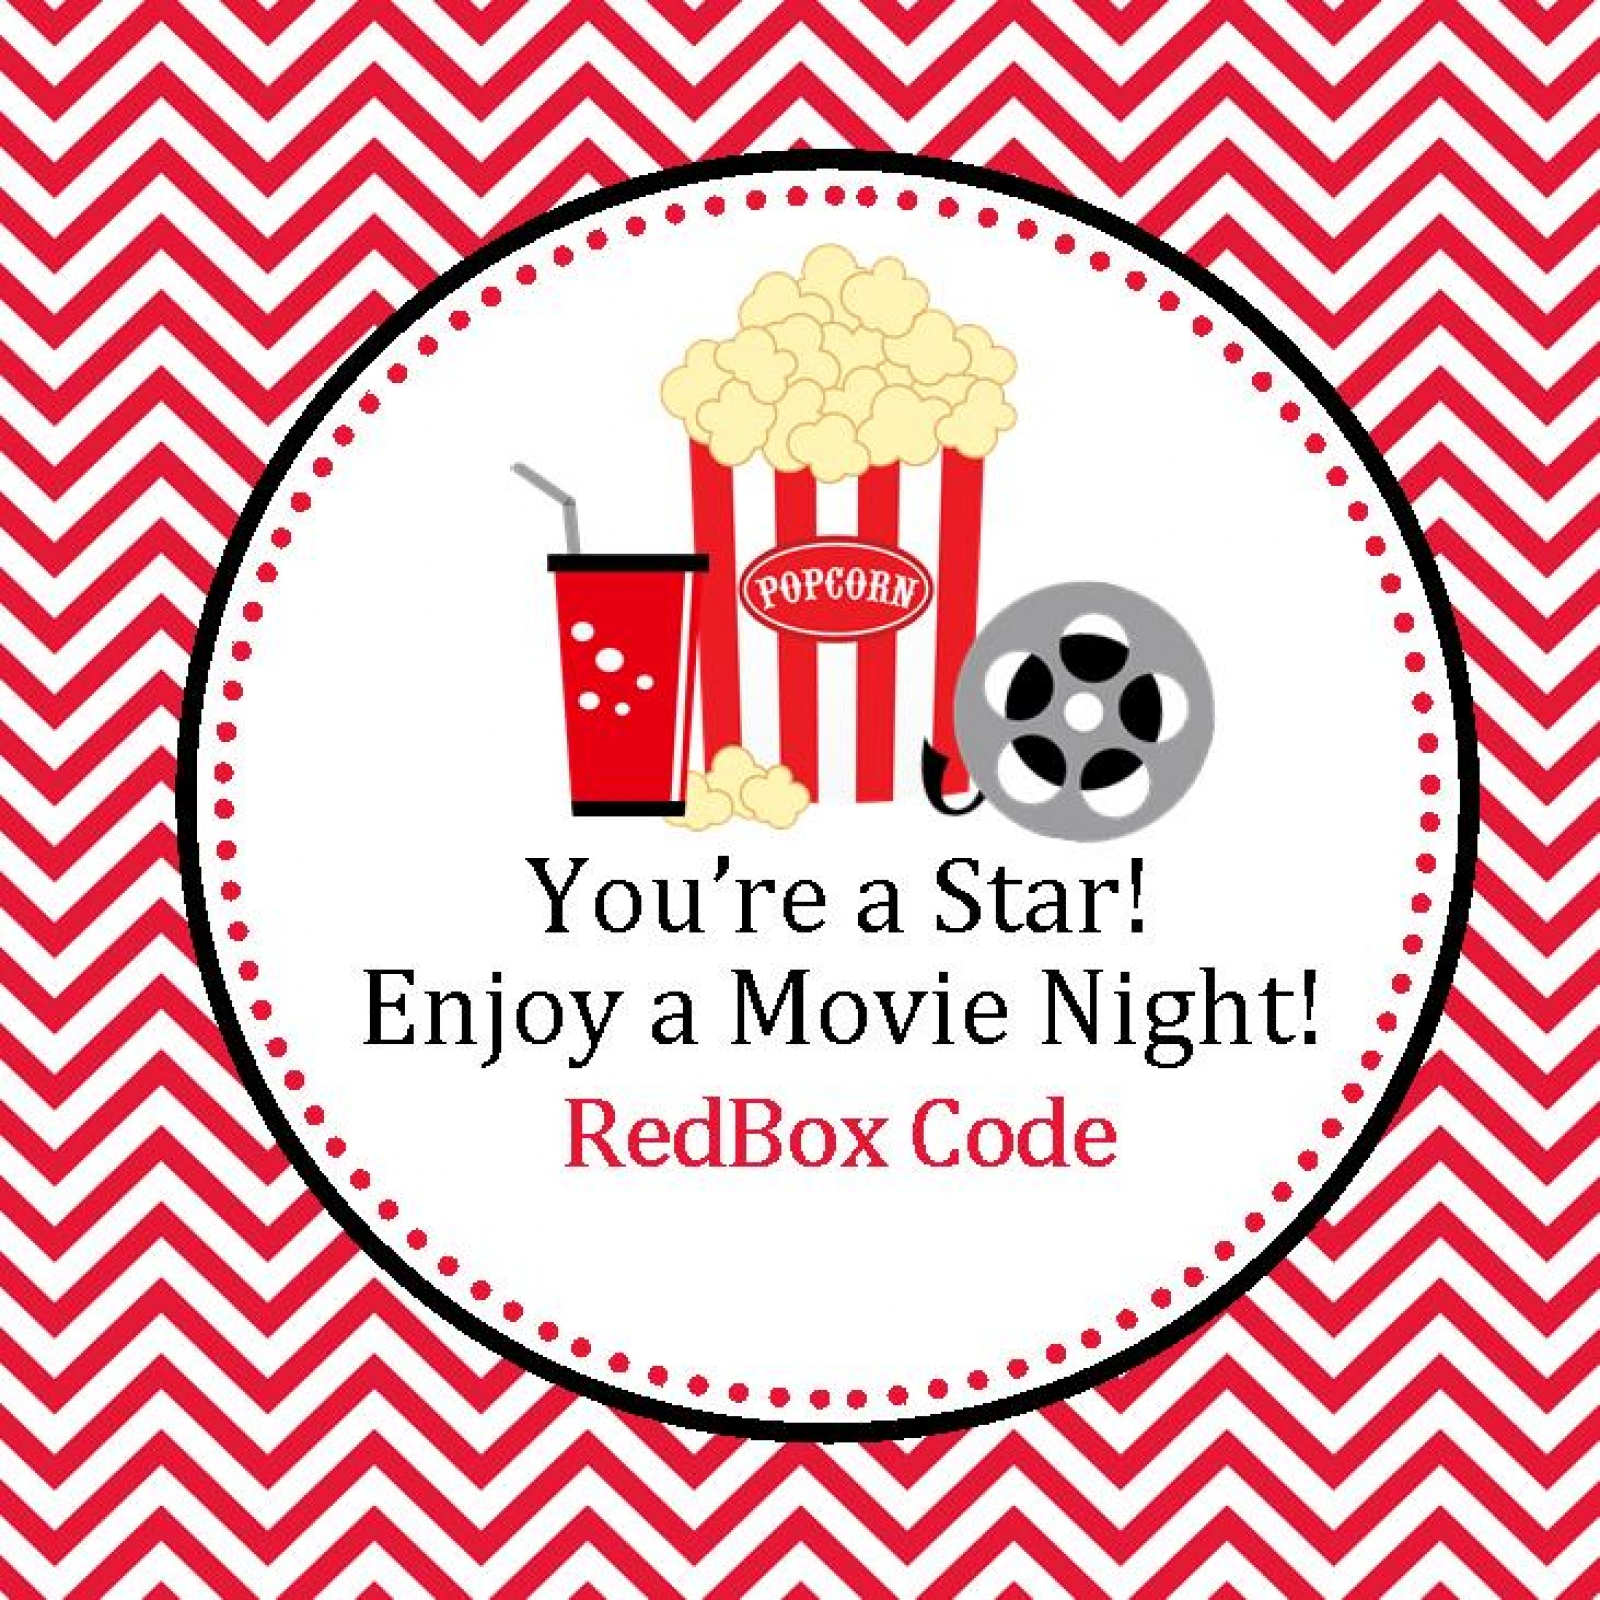 graphic about Redbox Printable named RedBox Printable Want Tags - RedBox Favors